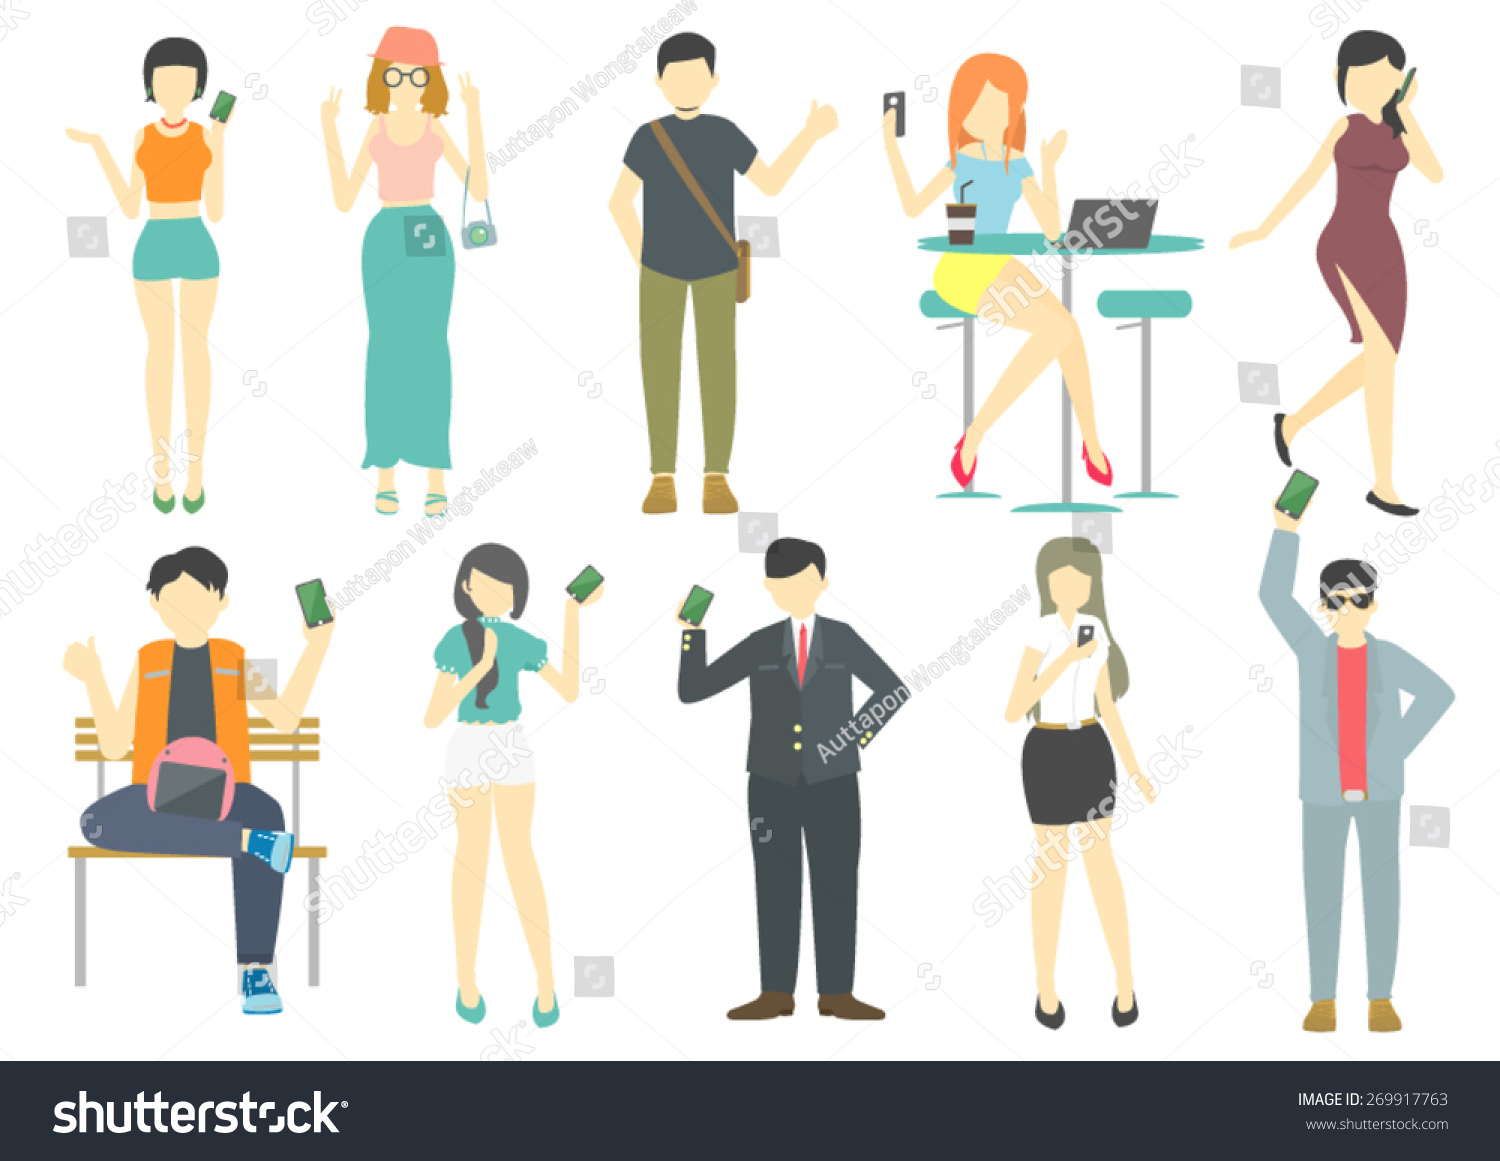 people smart phone flat design cartoon stock vector royalty free 269917763 https www shutterstock com image vector people smart phone flat design cartoon 269917763